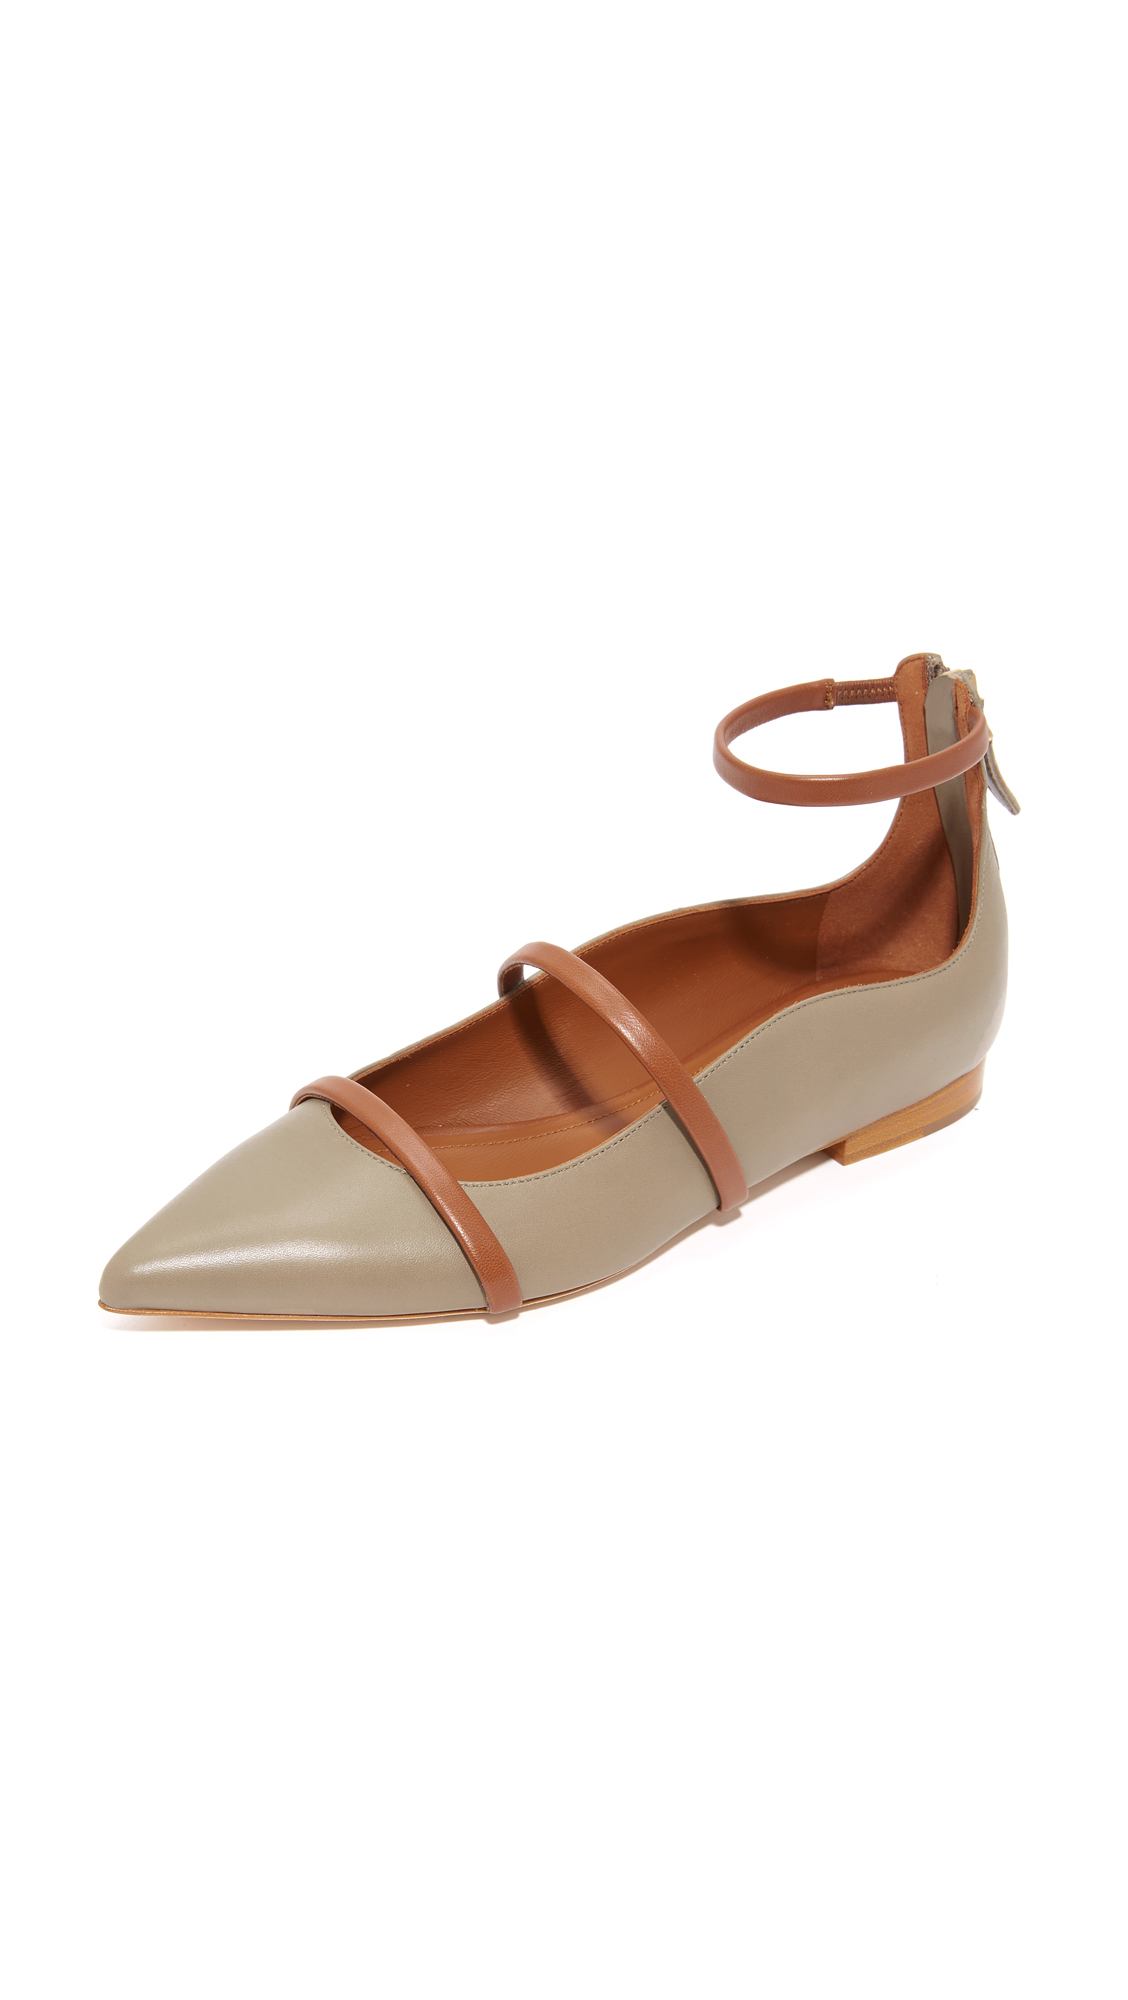 Malone Souliers Robyn Flats - Grey/Cocoa